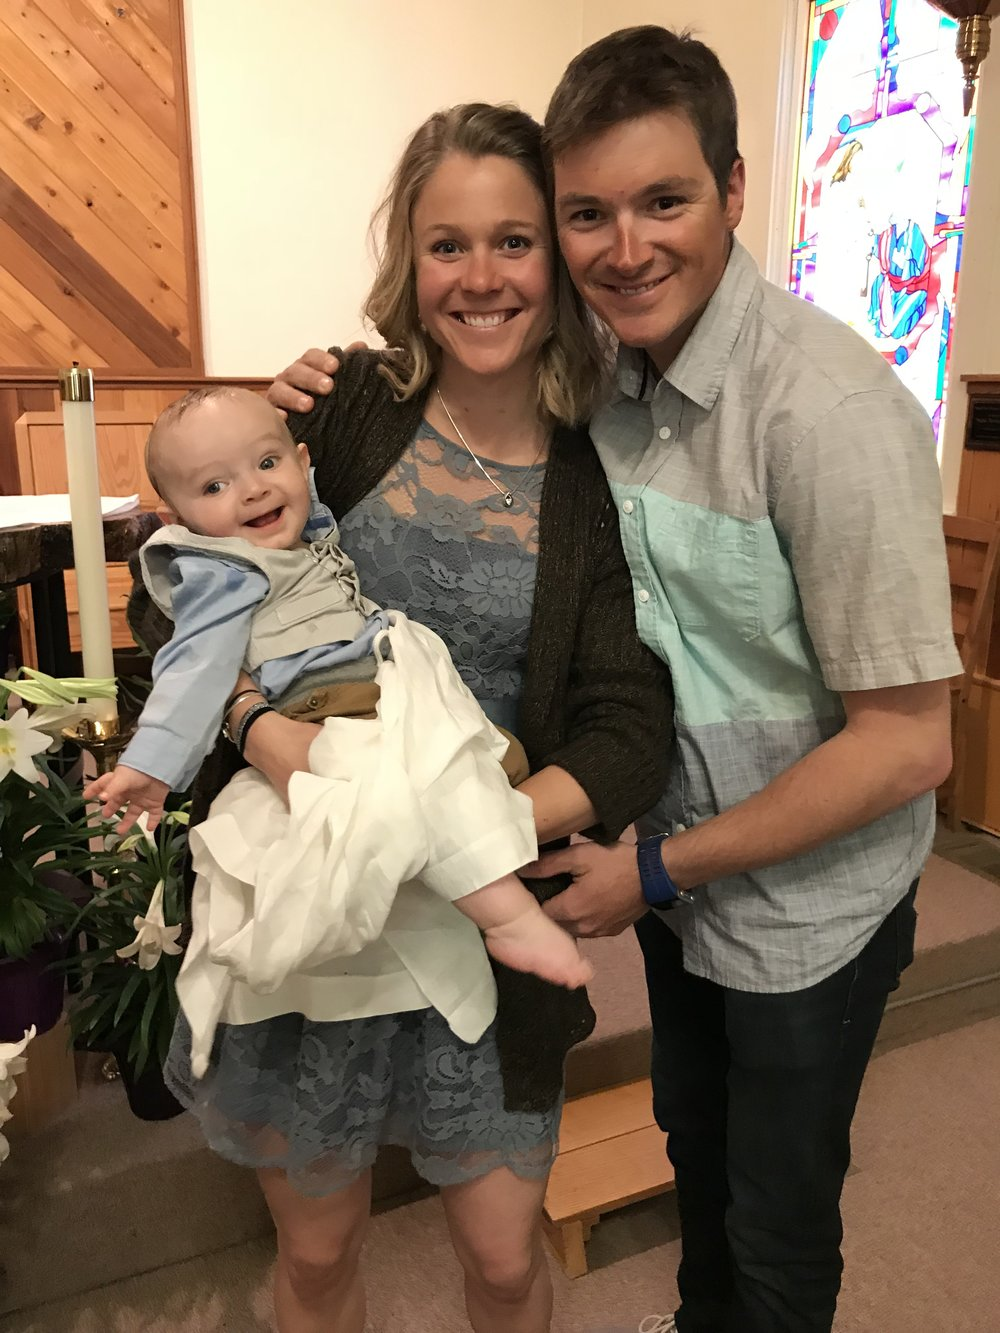 Jo and I are now official godparents of Carter!